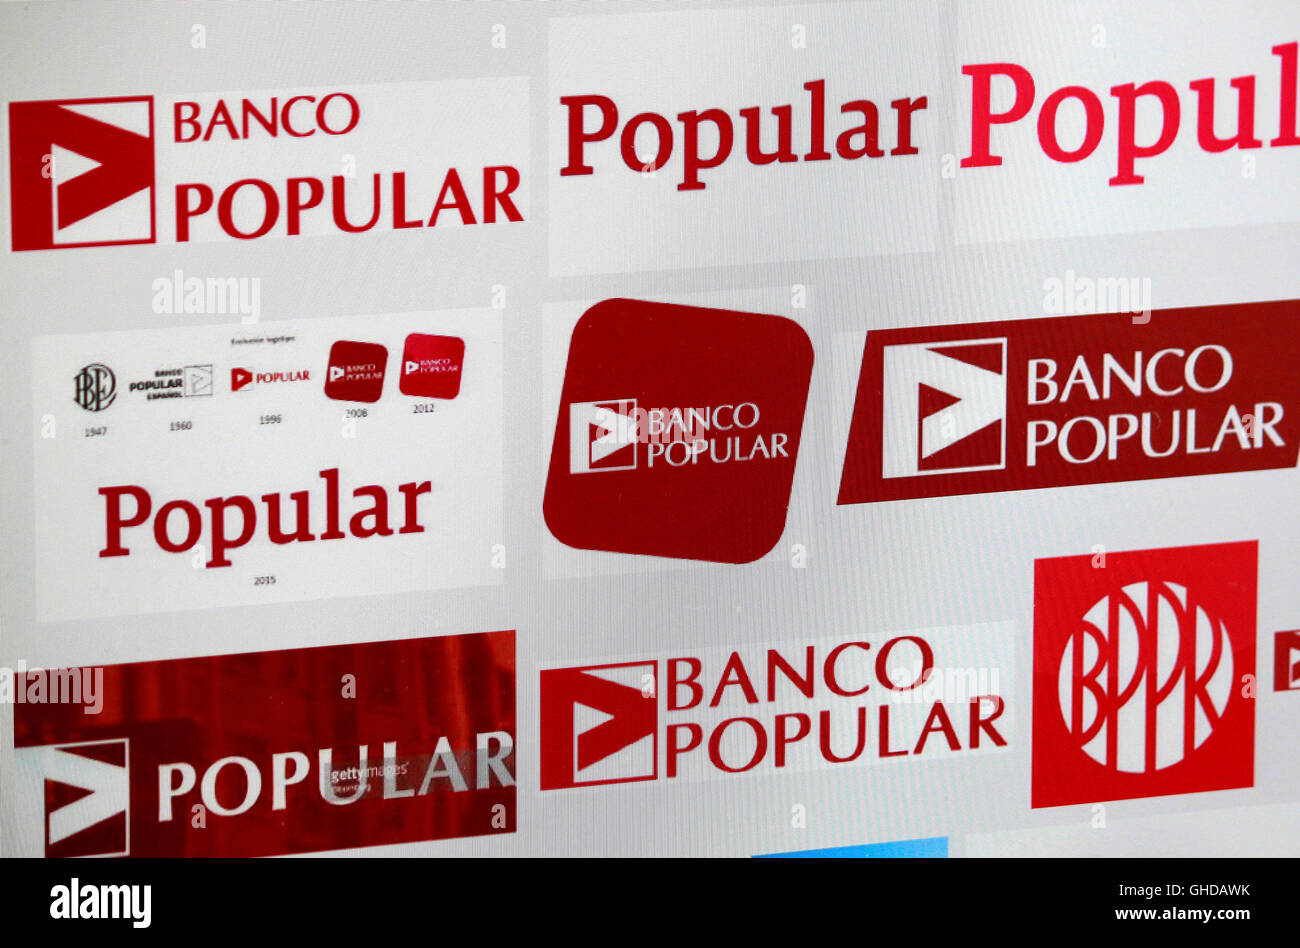 Loge der Marke 'Banco Popular', Berlin. - Stock Image